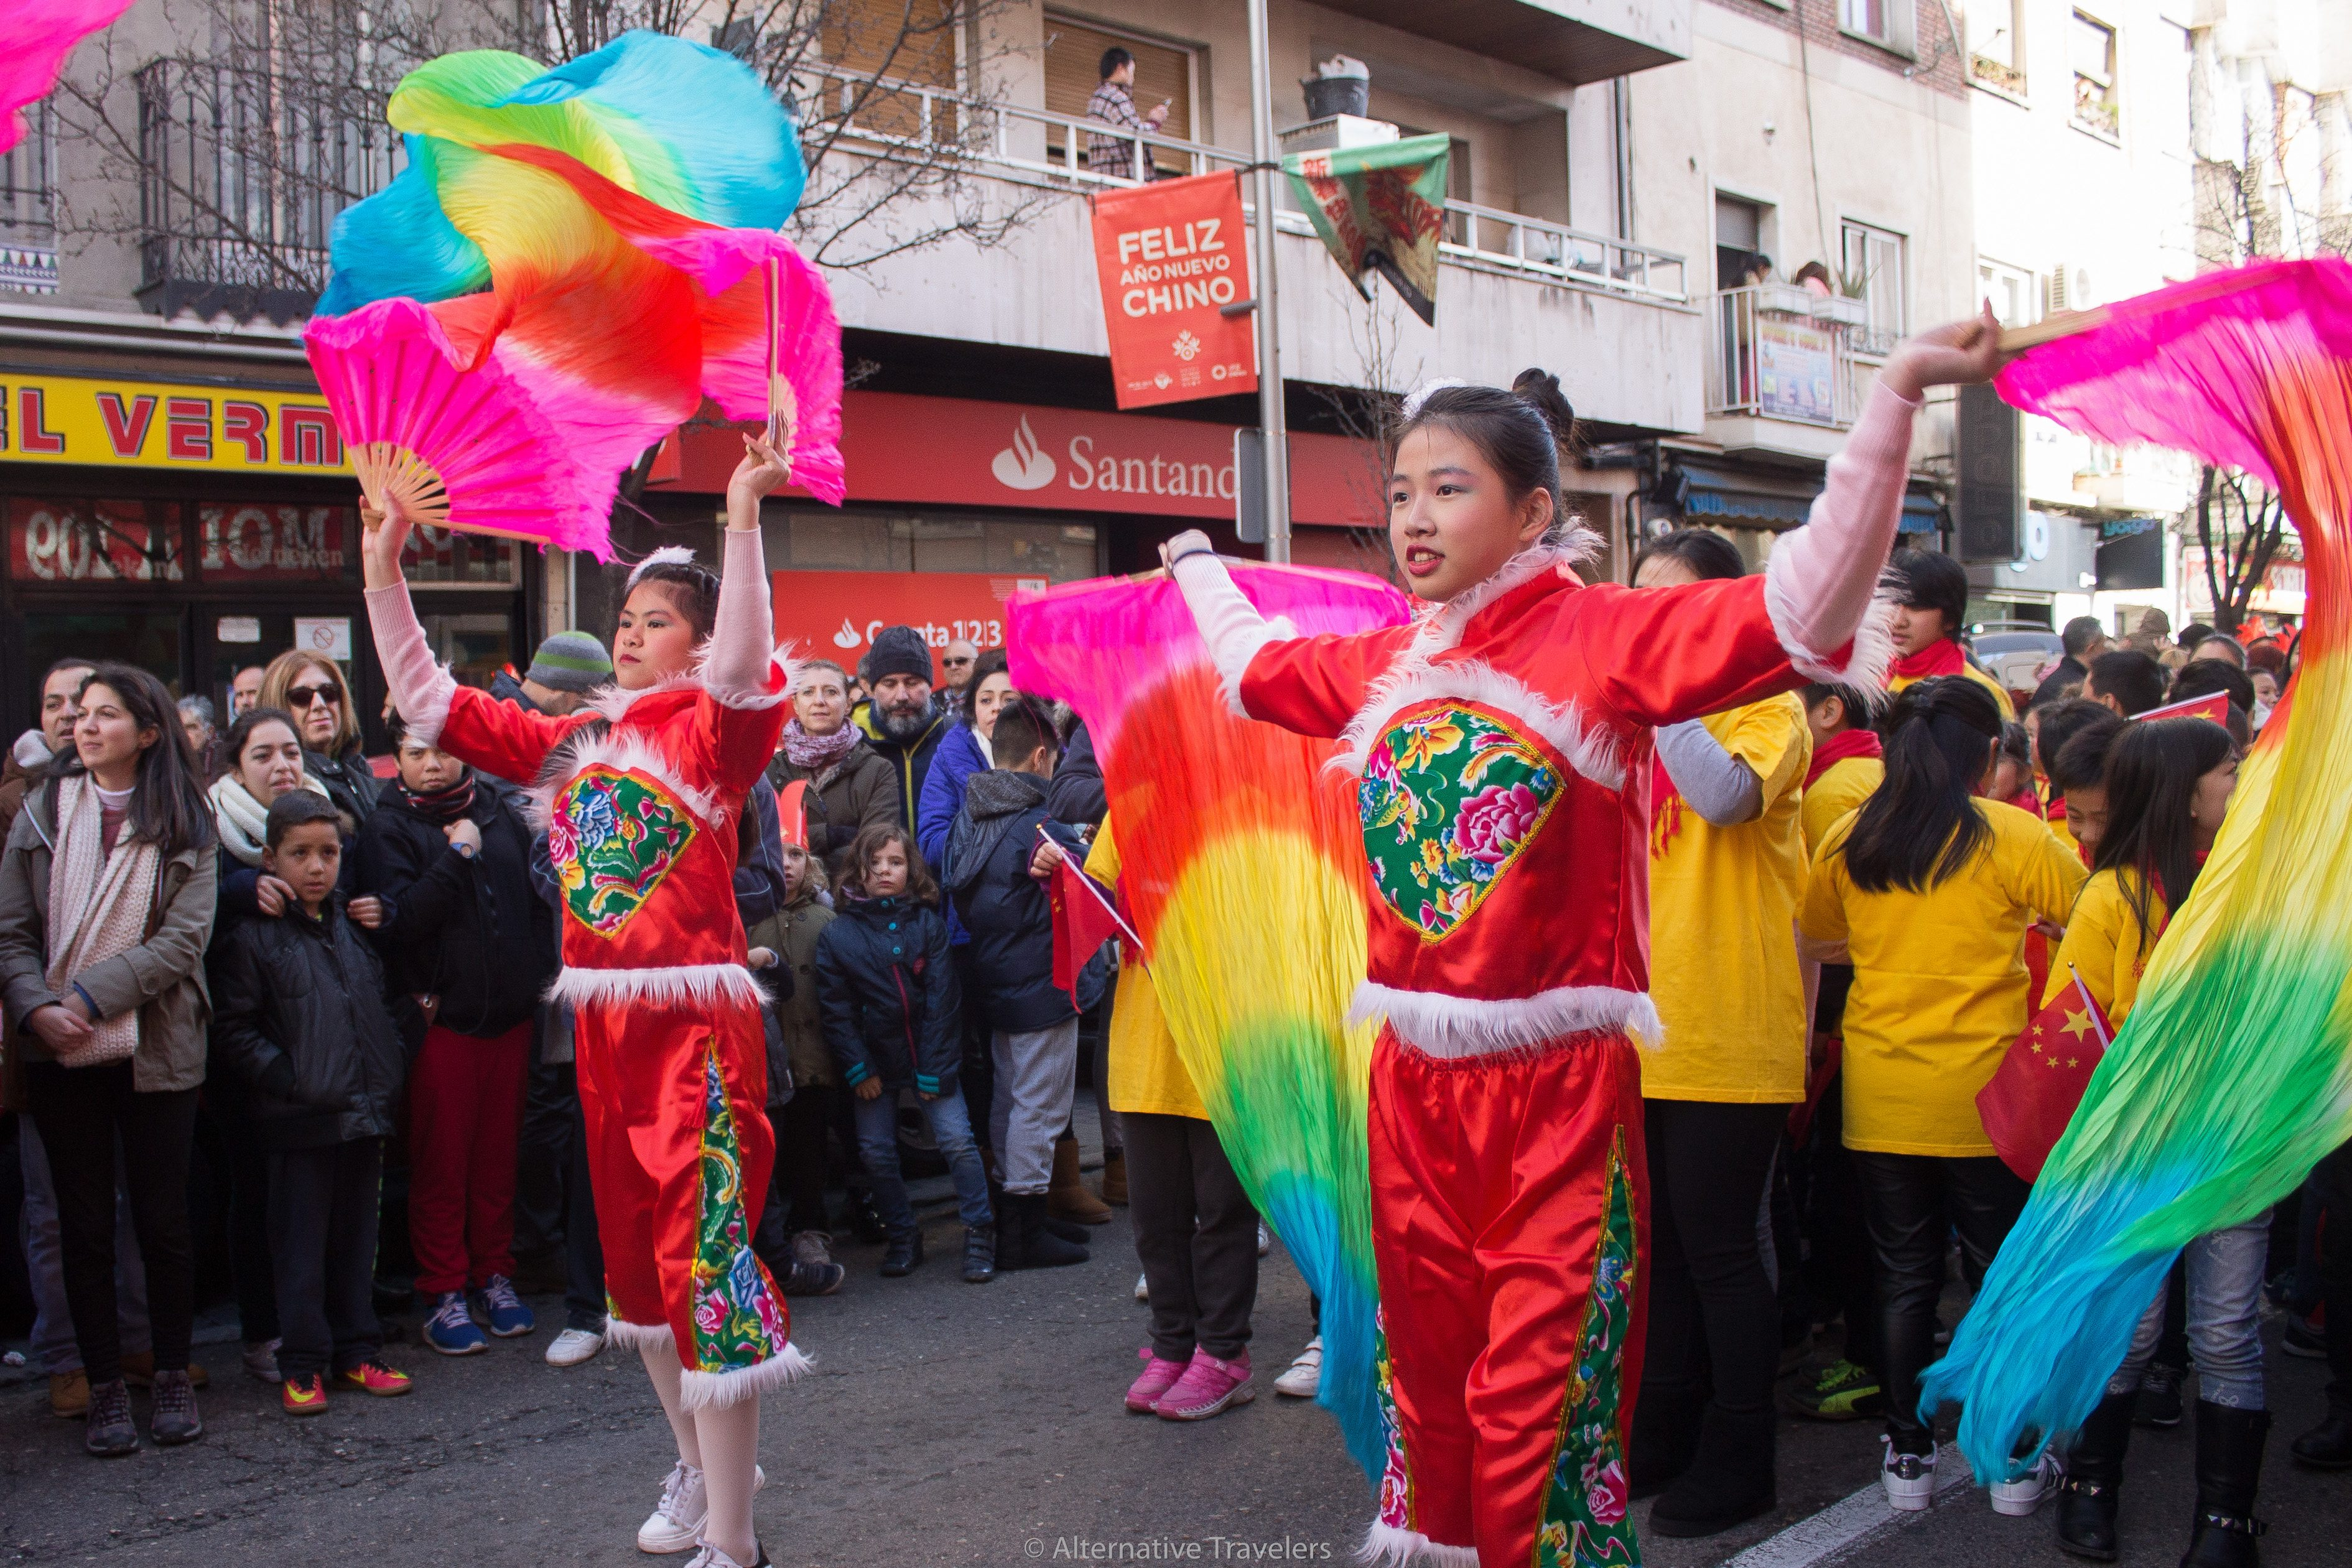 Girls waving colorful rainbow flags at Chinese New Year in Madrid